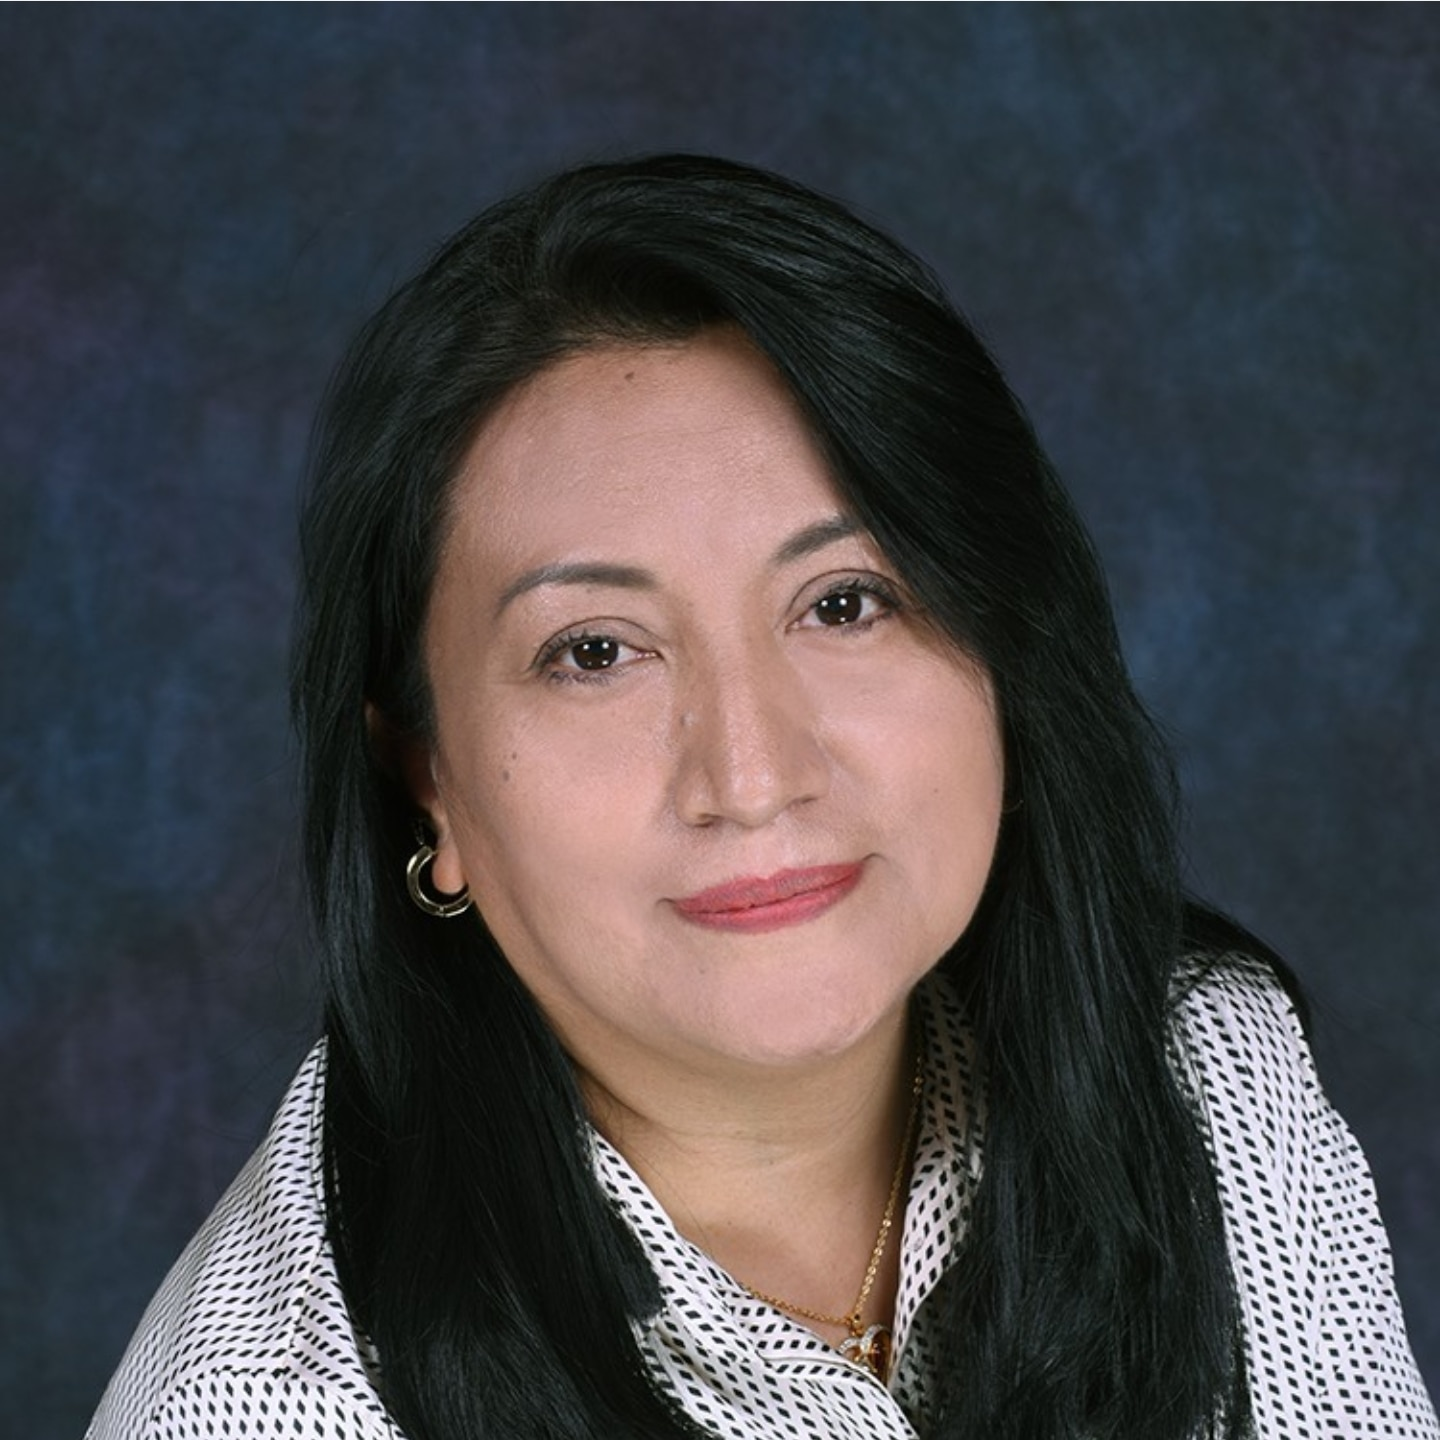 MONICA JANETH CAVE Financial Professional & Insurance Agent